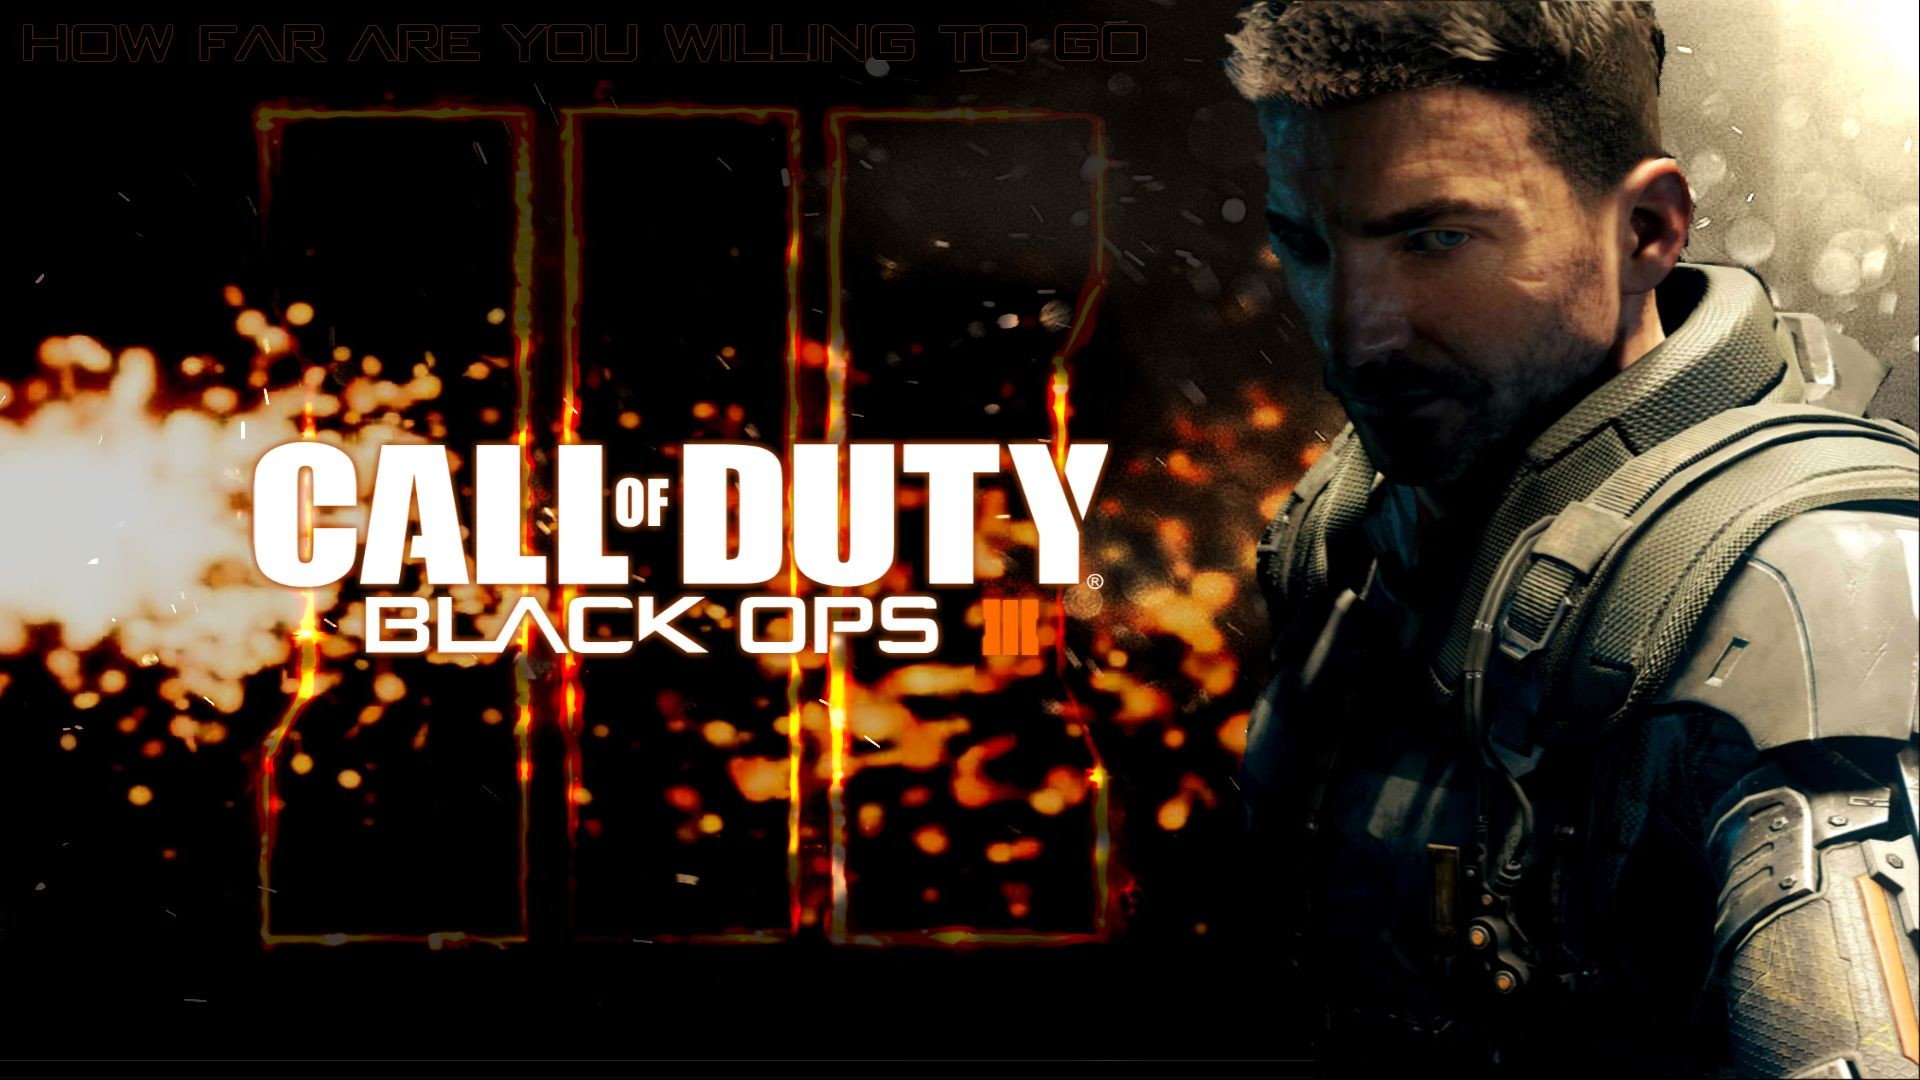 Magnificent Call of Duty Black Ops III Wallpaper